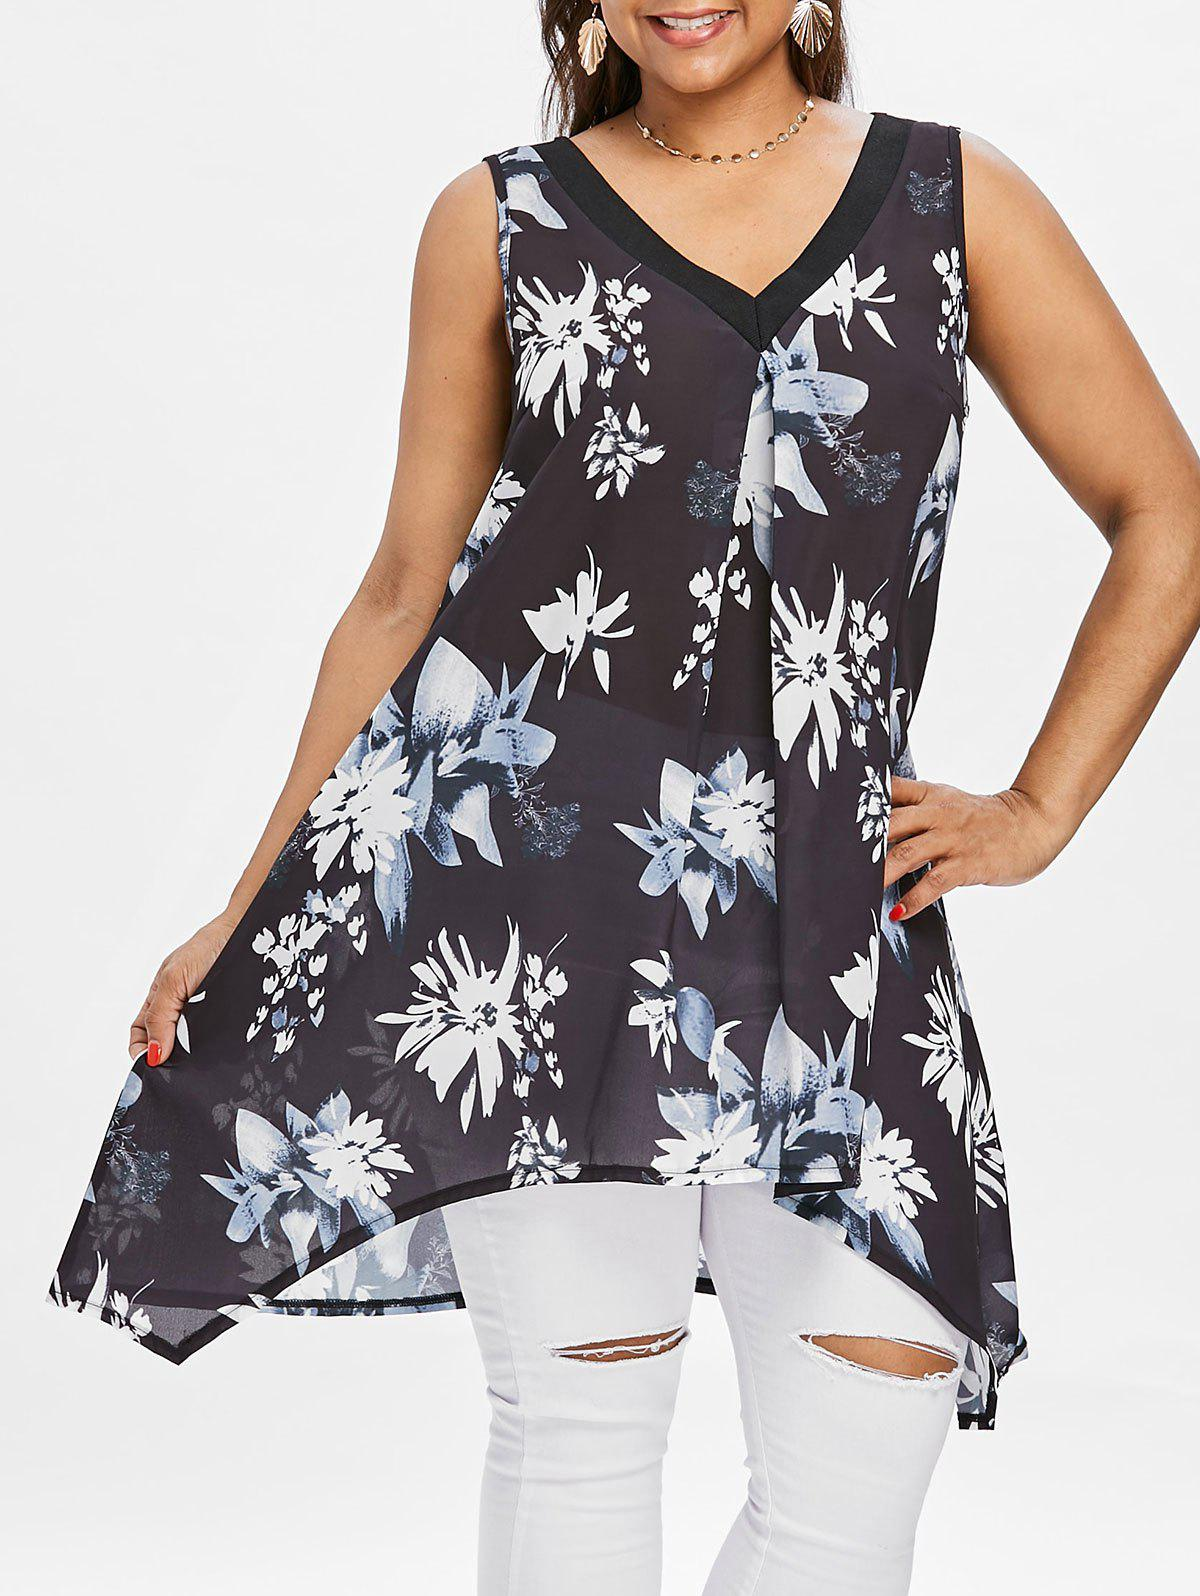 New Plus Size Floral Sleeveless Blouse